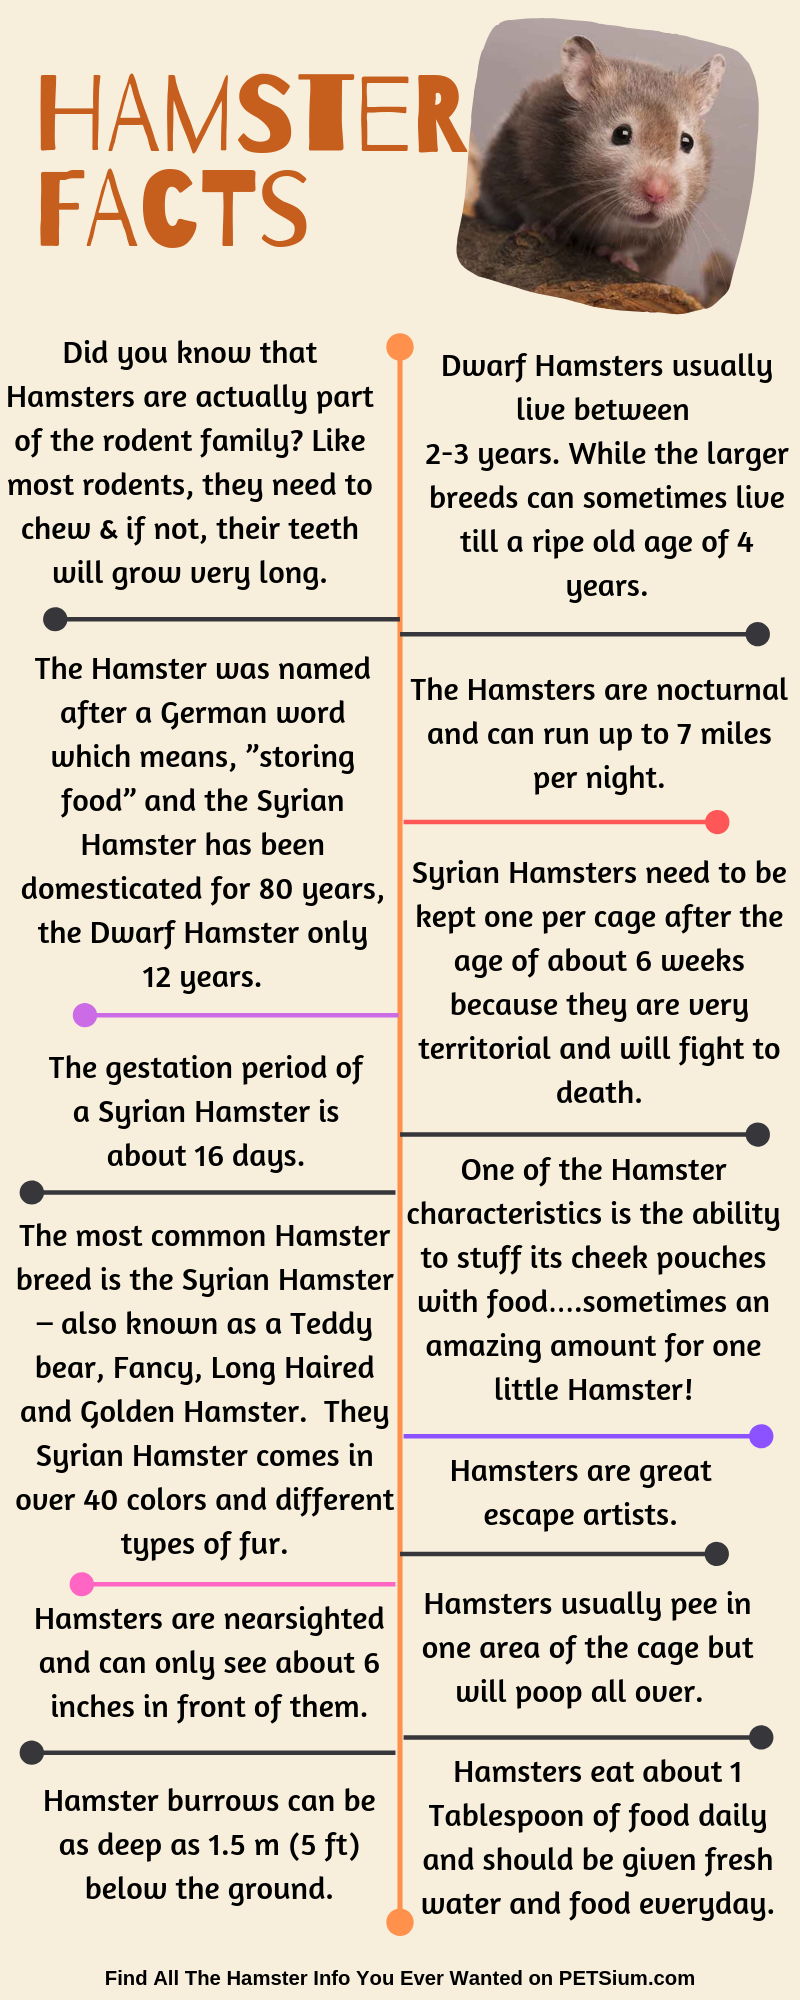 hamster facts infographic